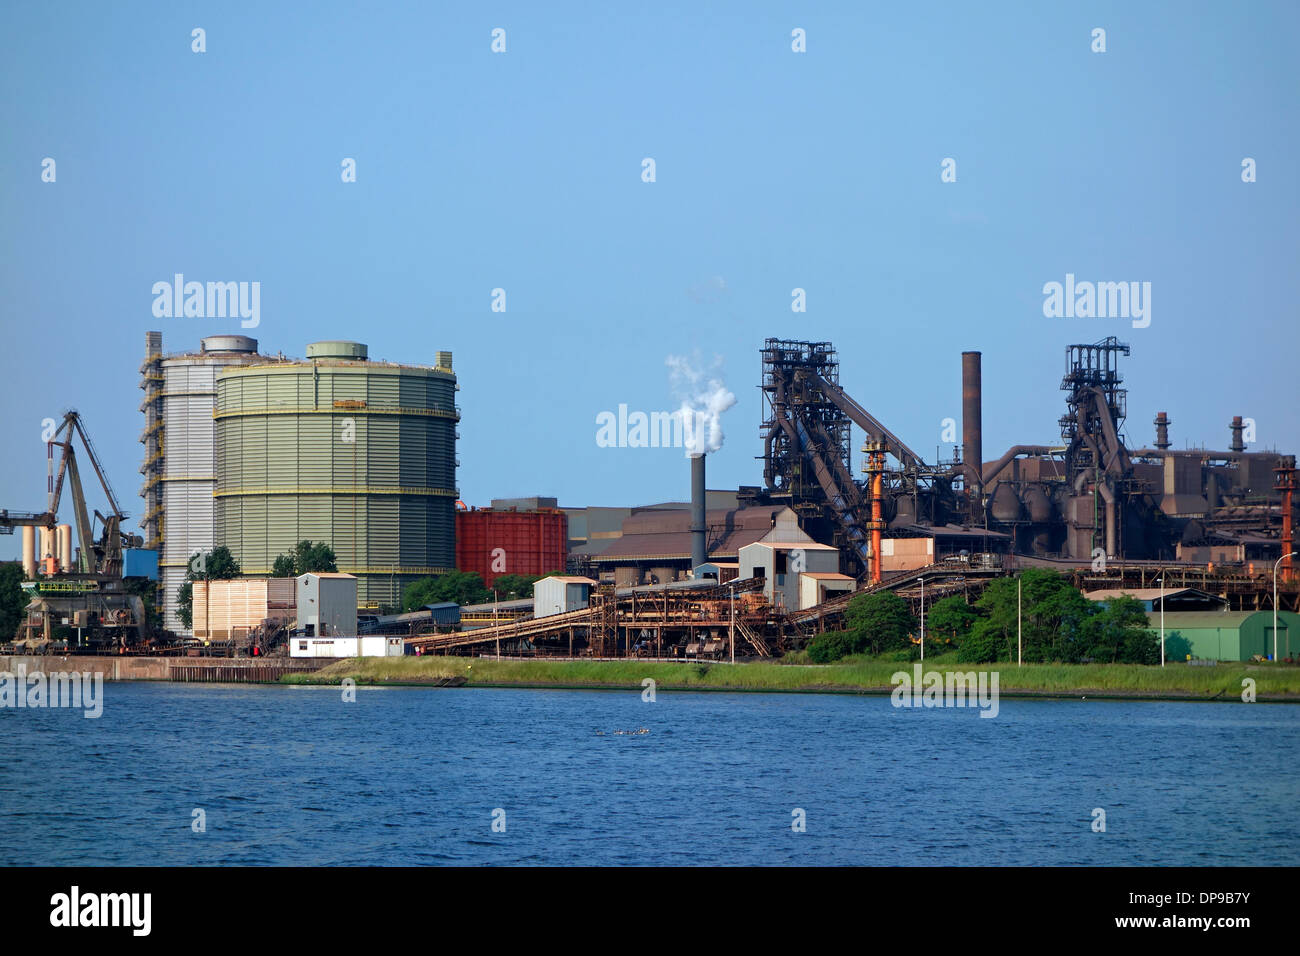 Steelworks of ArcelorMittal Gent, world's largest steel producer, port of Ghent, East Flanders, Belgium - Stock Image